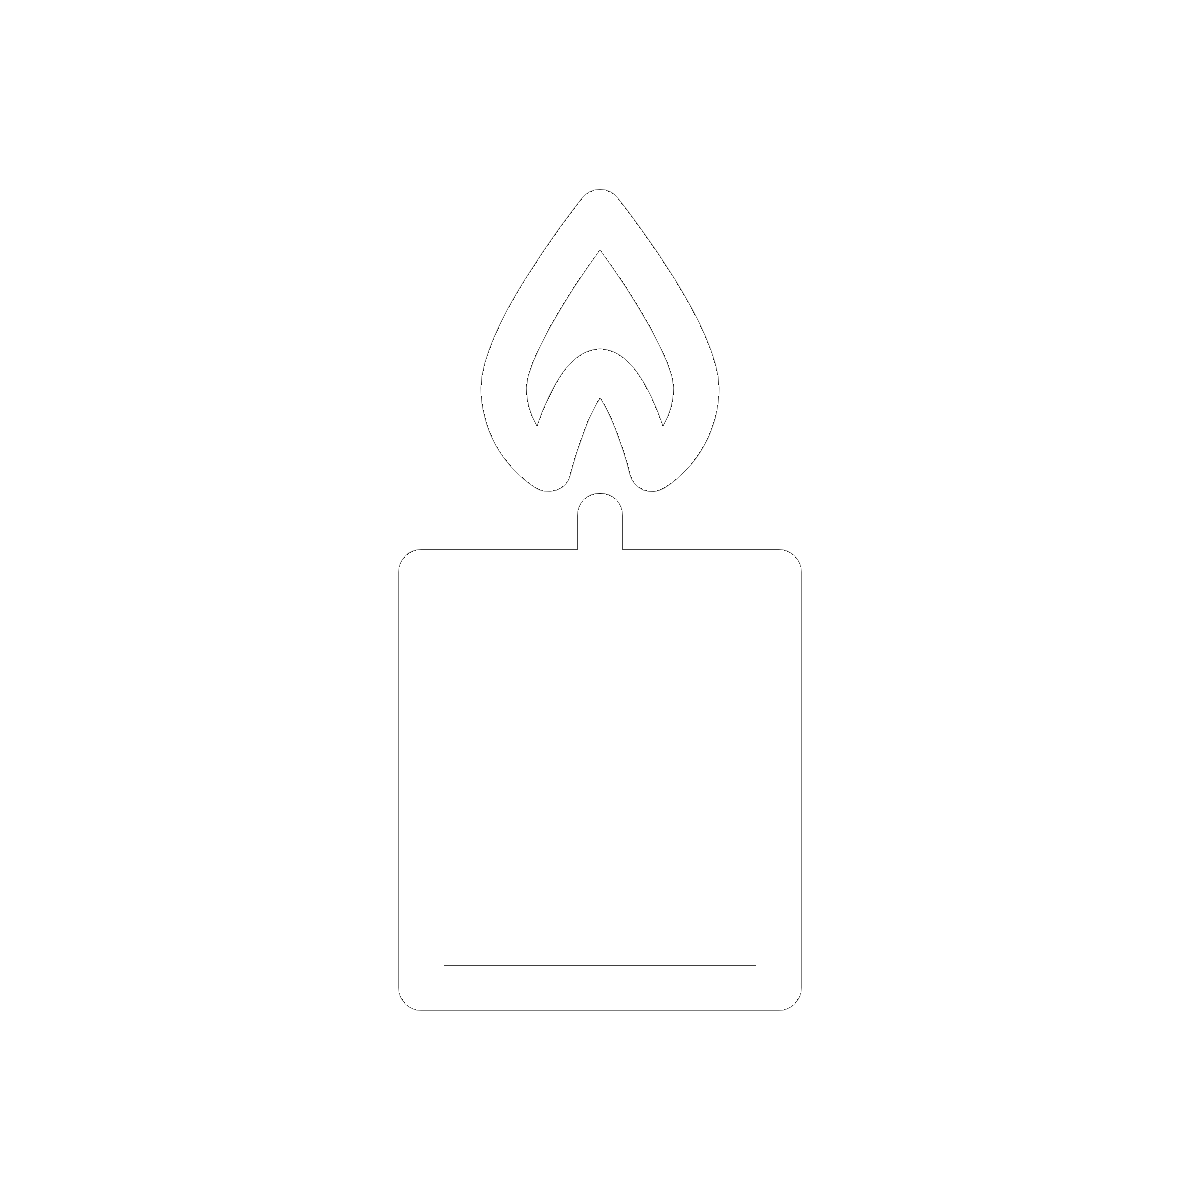 Symbol The Candle